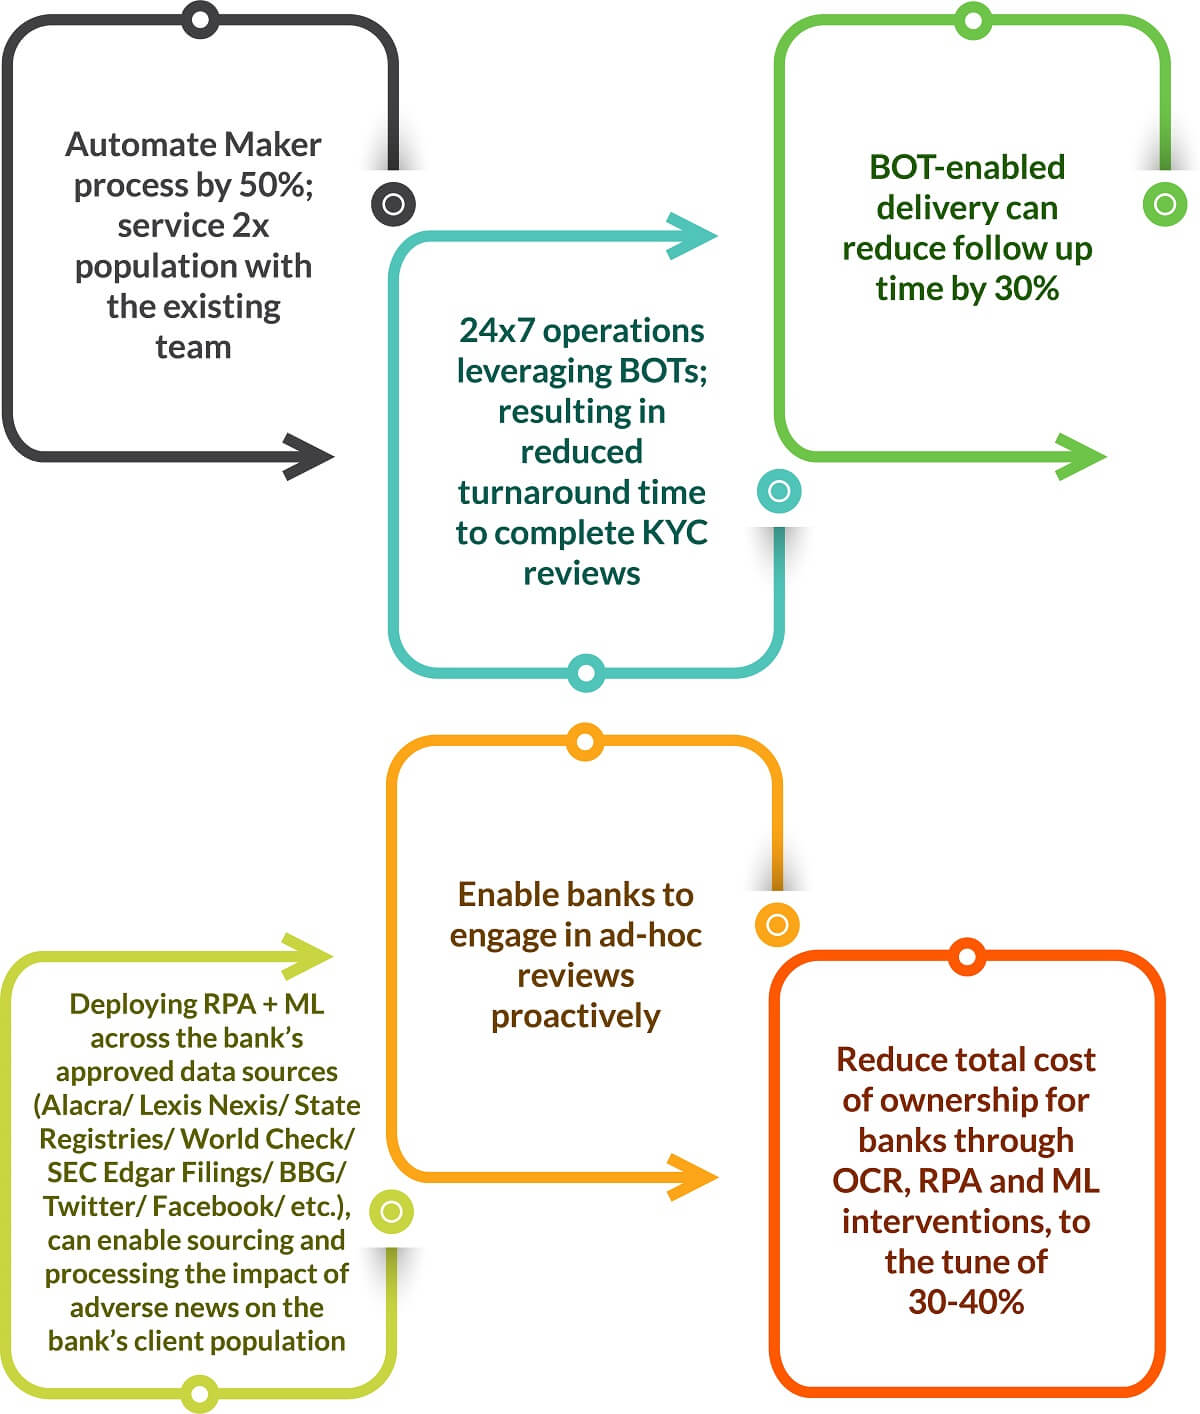 Key benefits of automating KYC operations